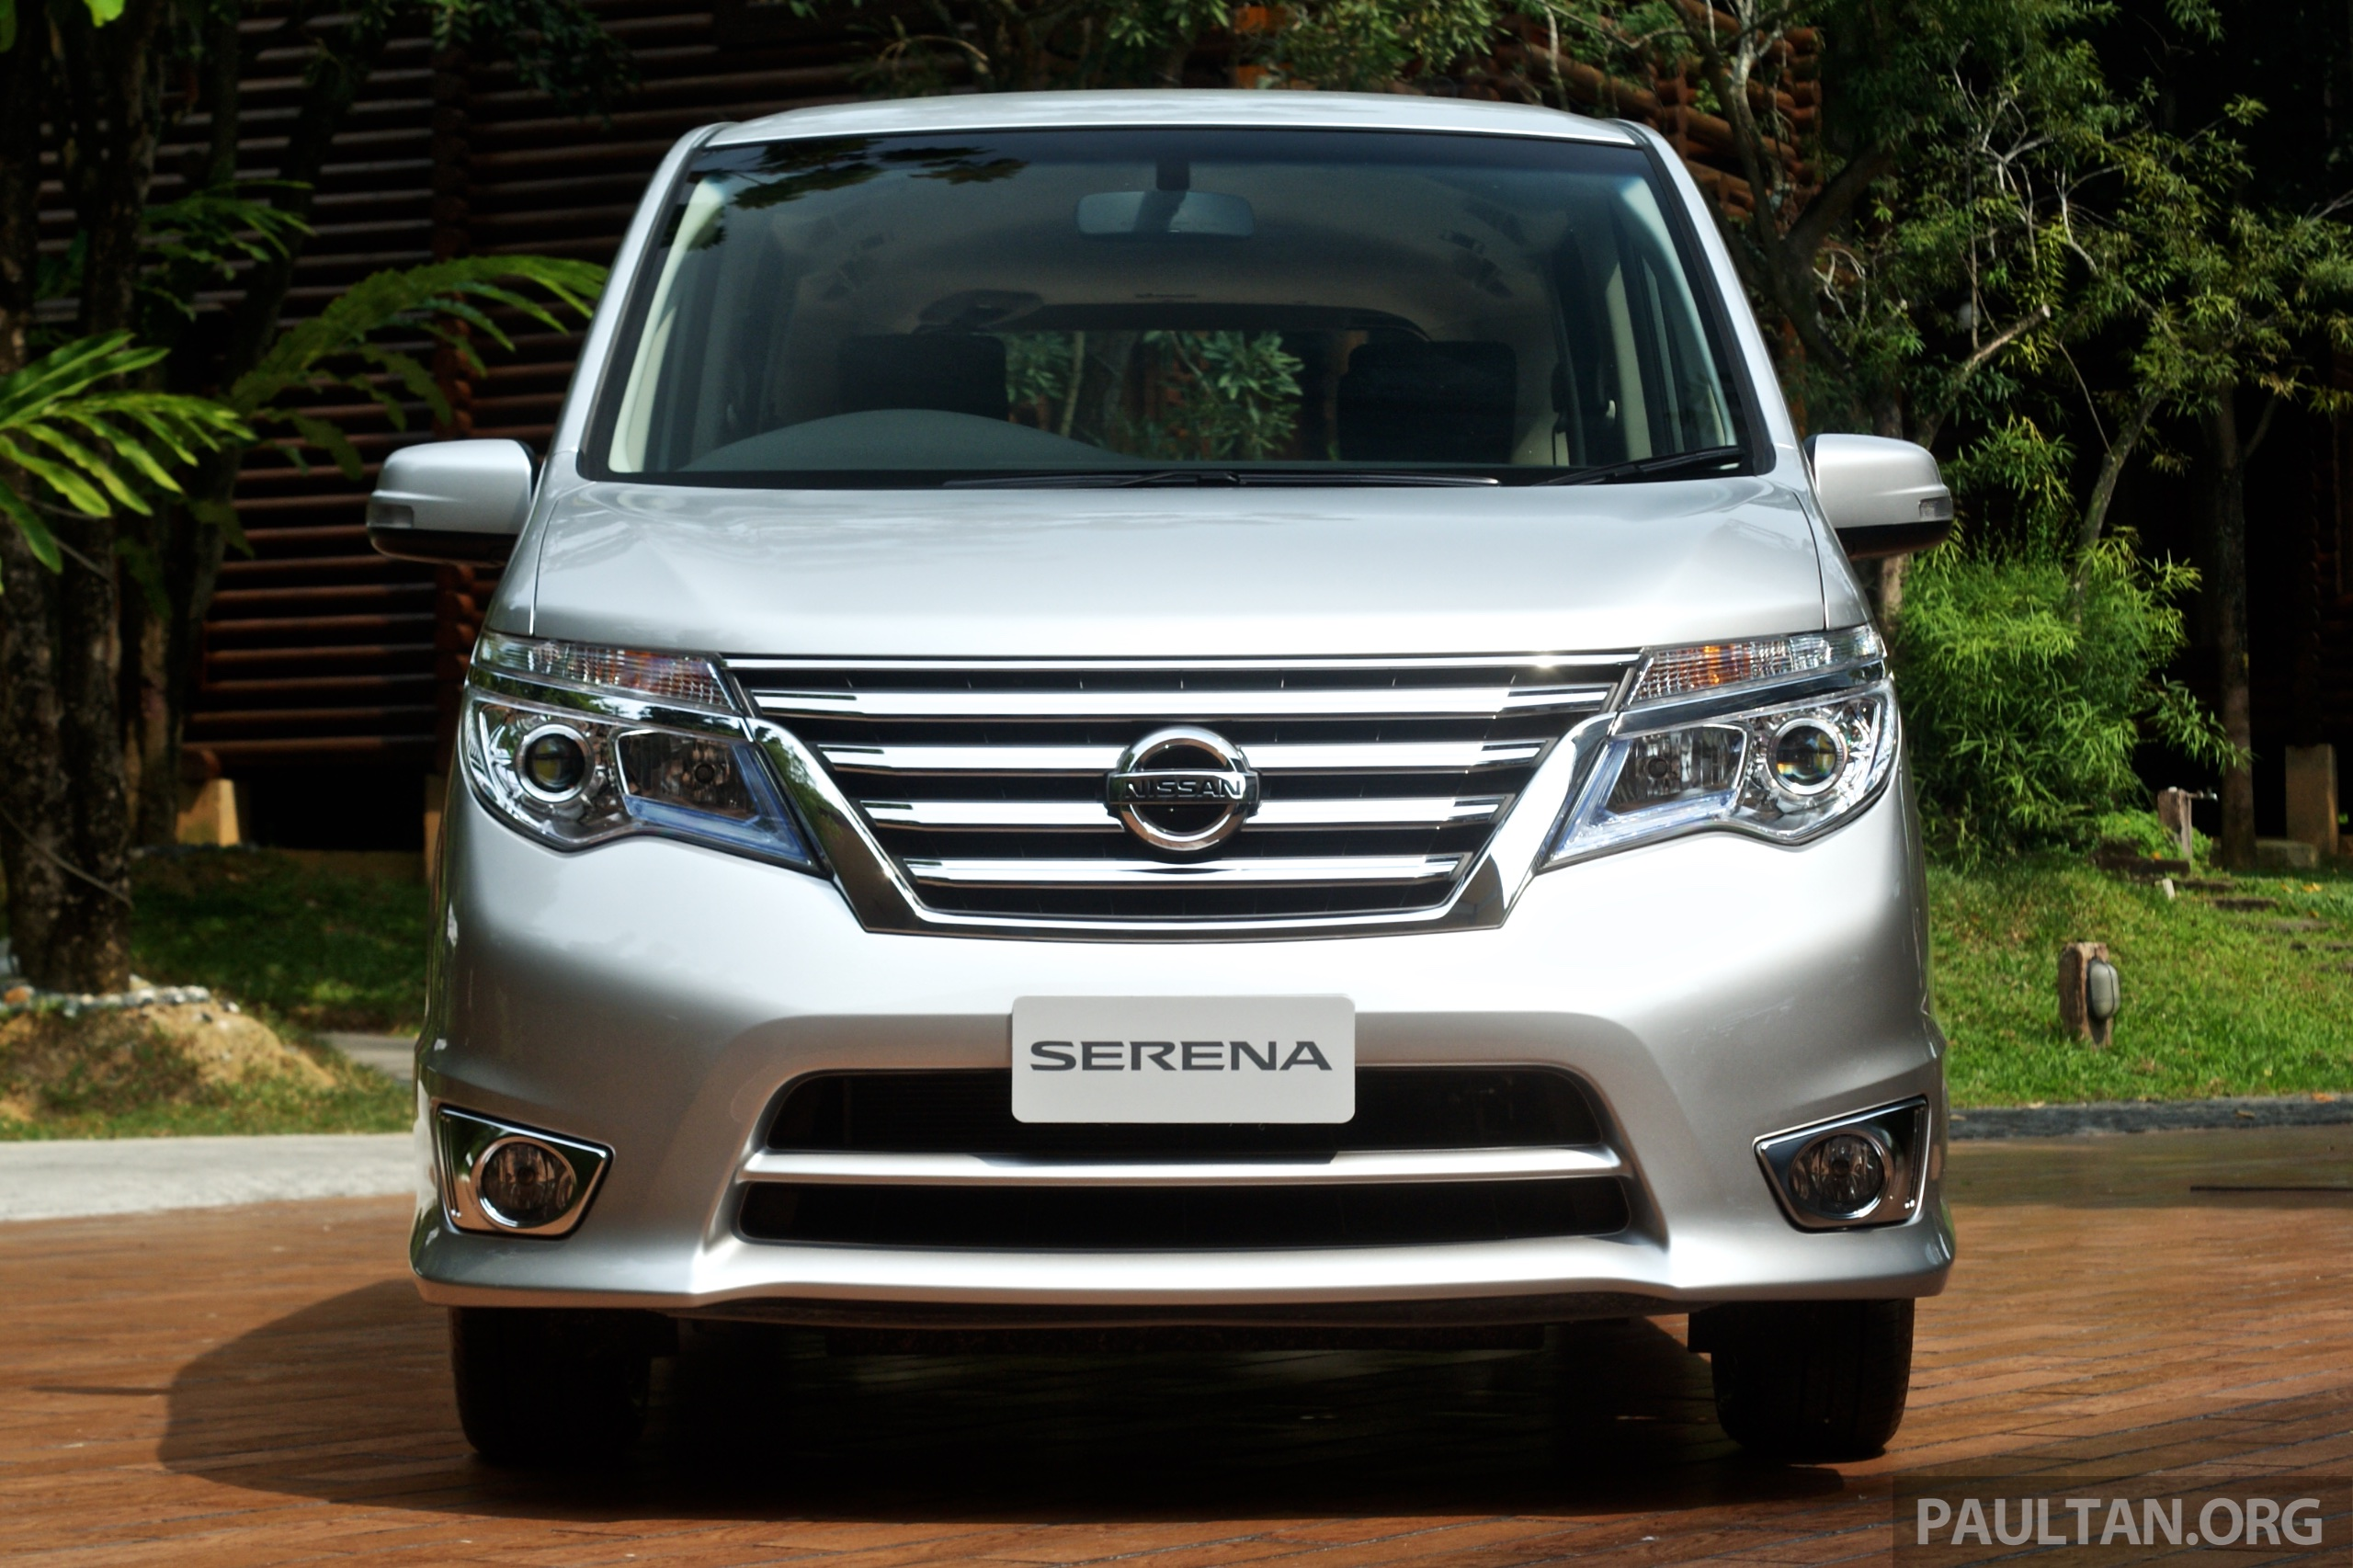 Driven 2014 Nissan Serena S Hybrid Better Value